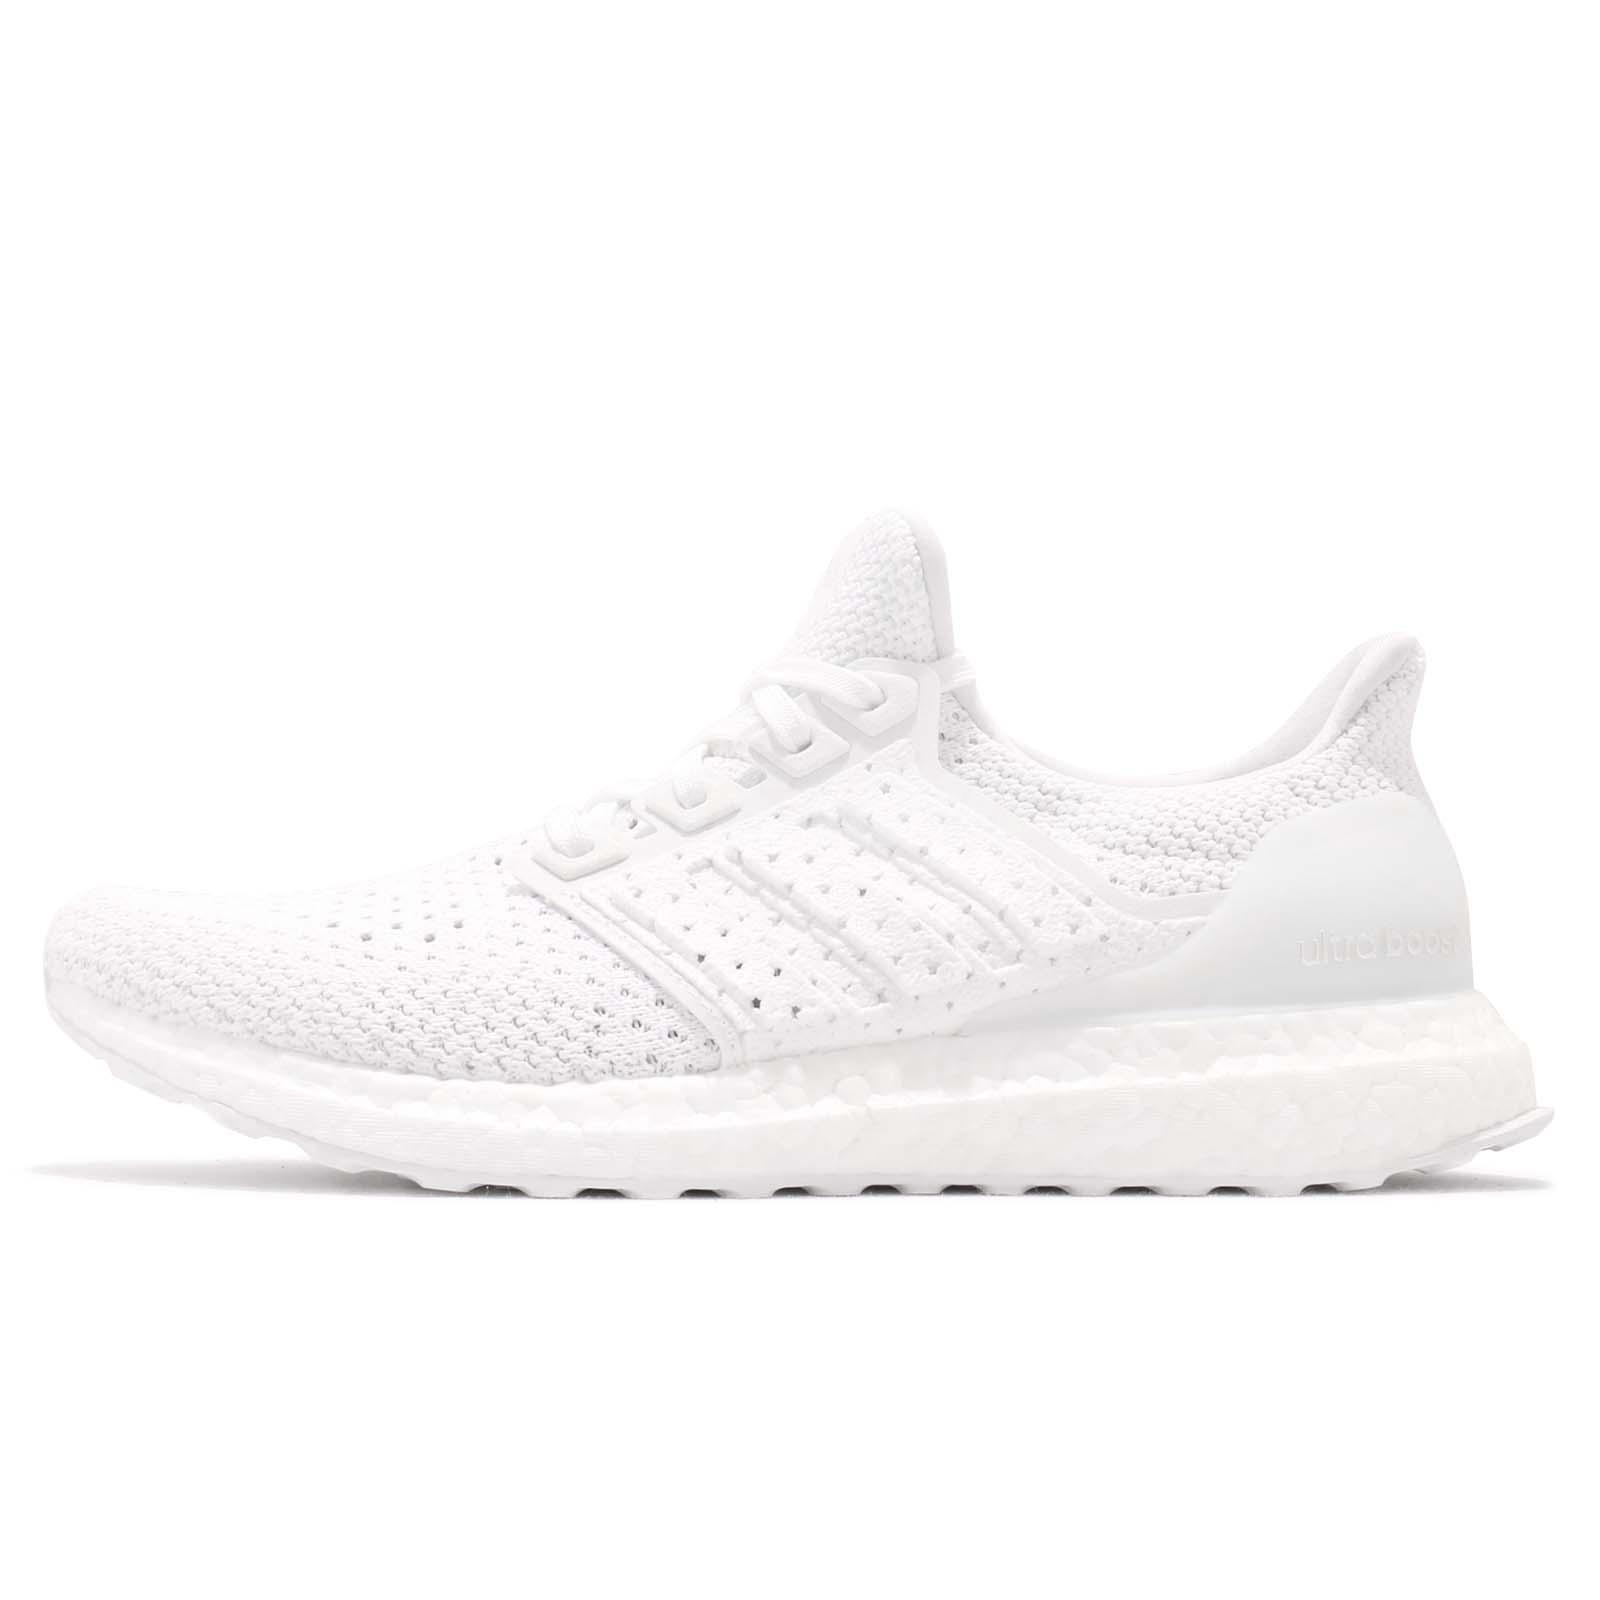 the latest 277f0 0286c adidas UltraBOOST Clima Footwear White Men Running Shoes Sneakers Trainer  BY8888